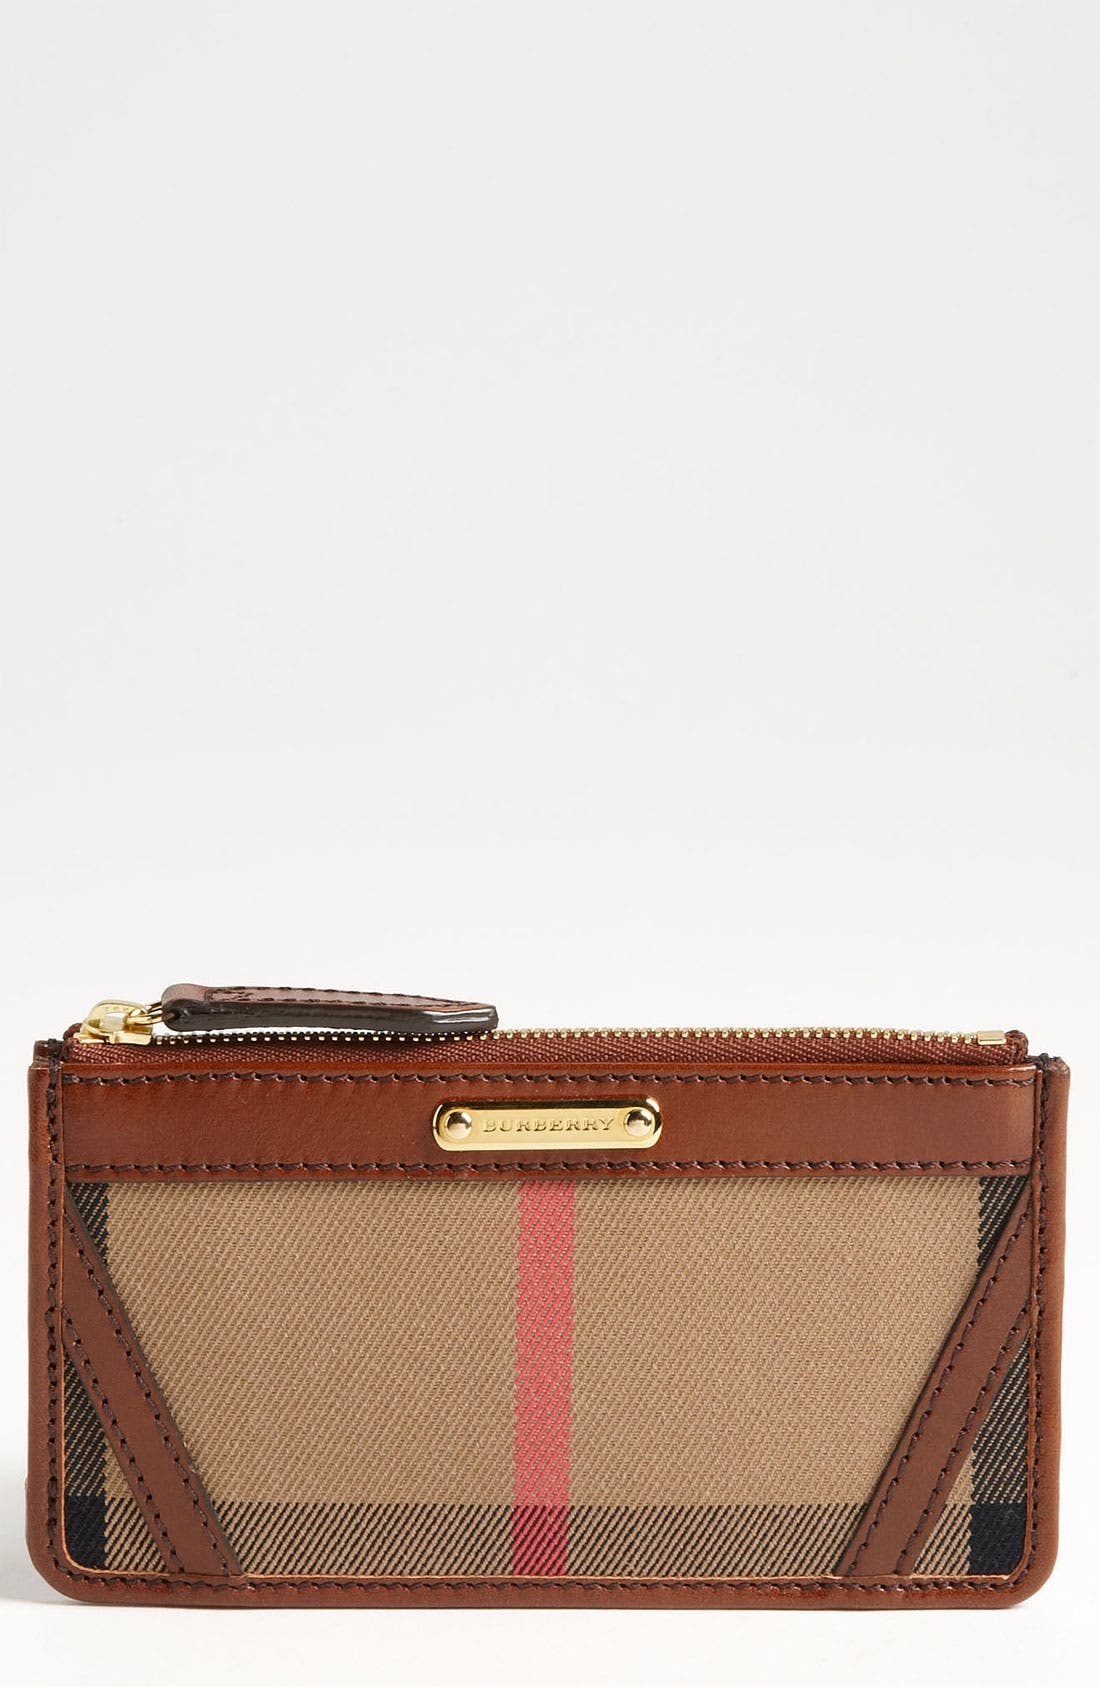 Main Image - Burberry 'House Check' Wallet